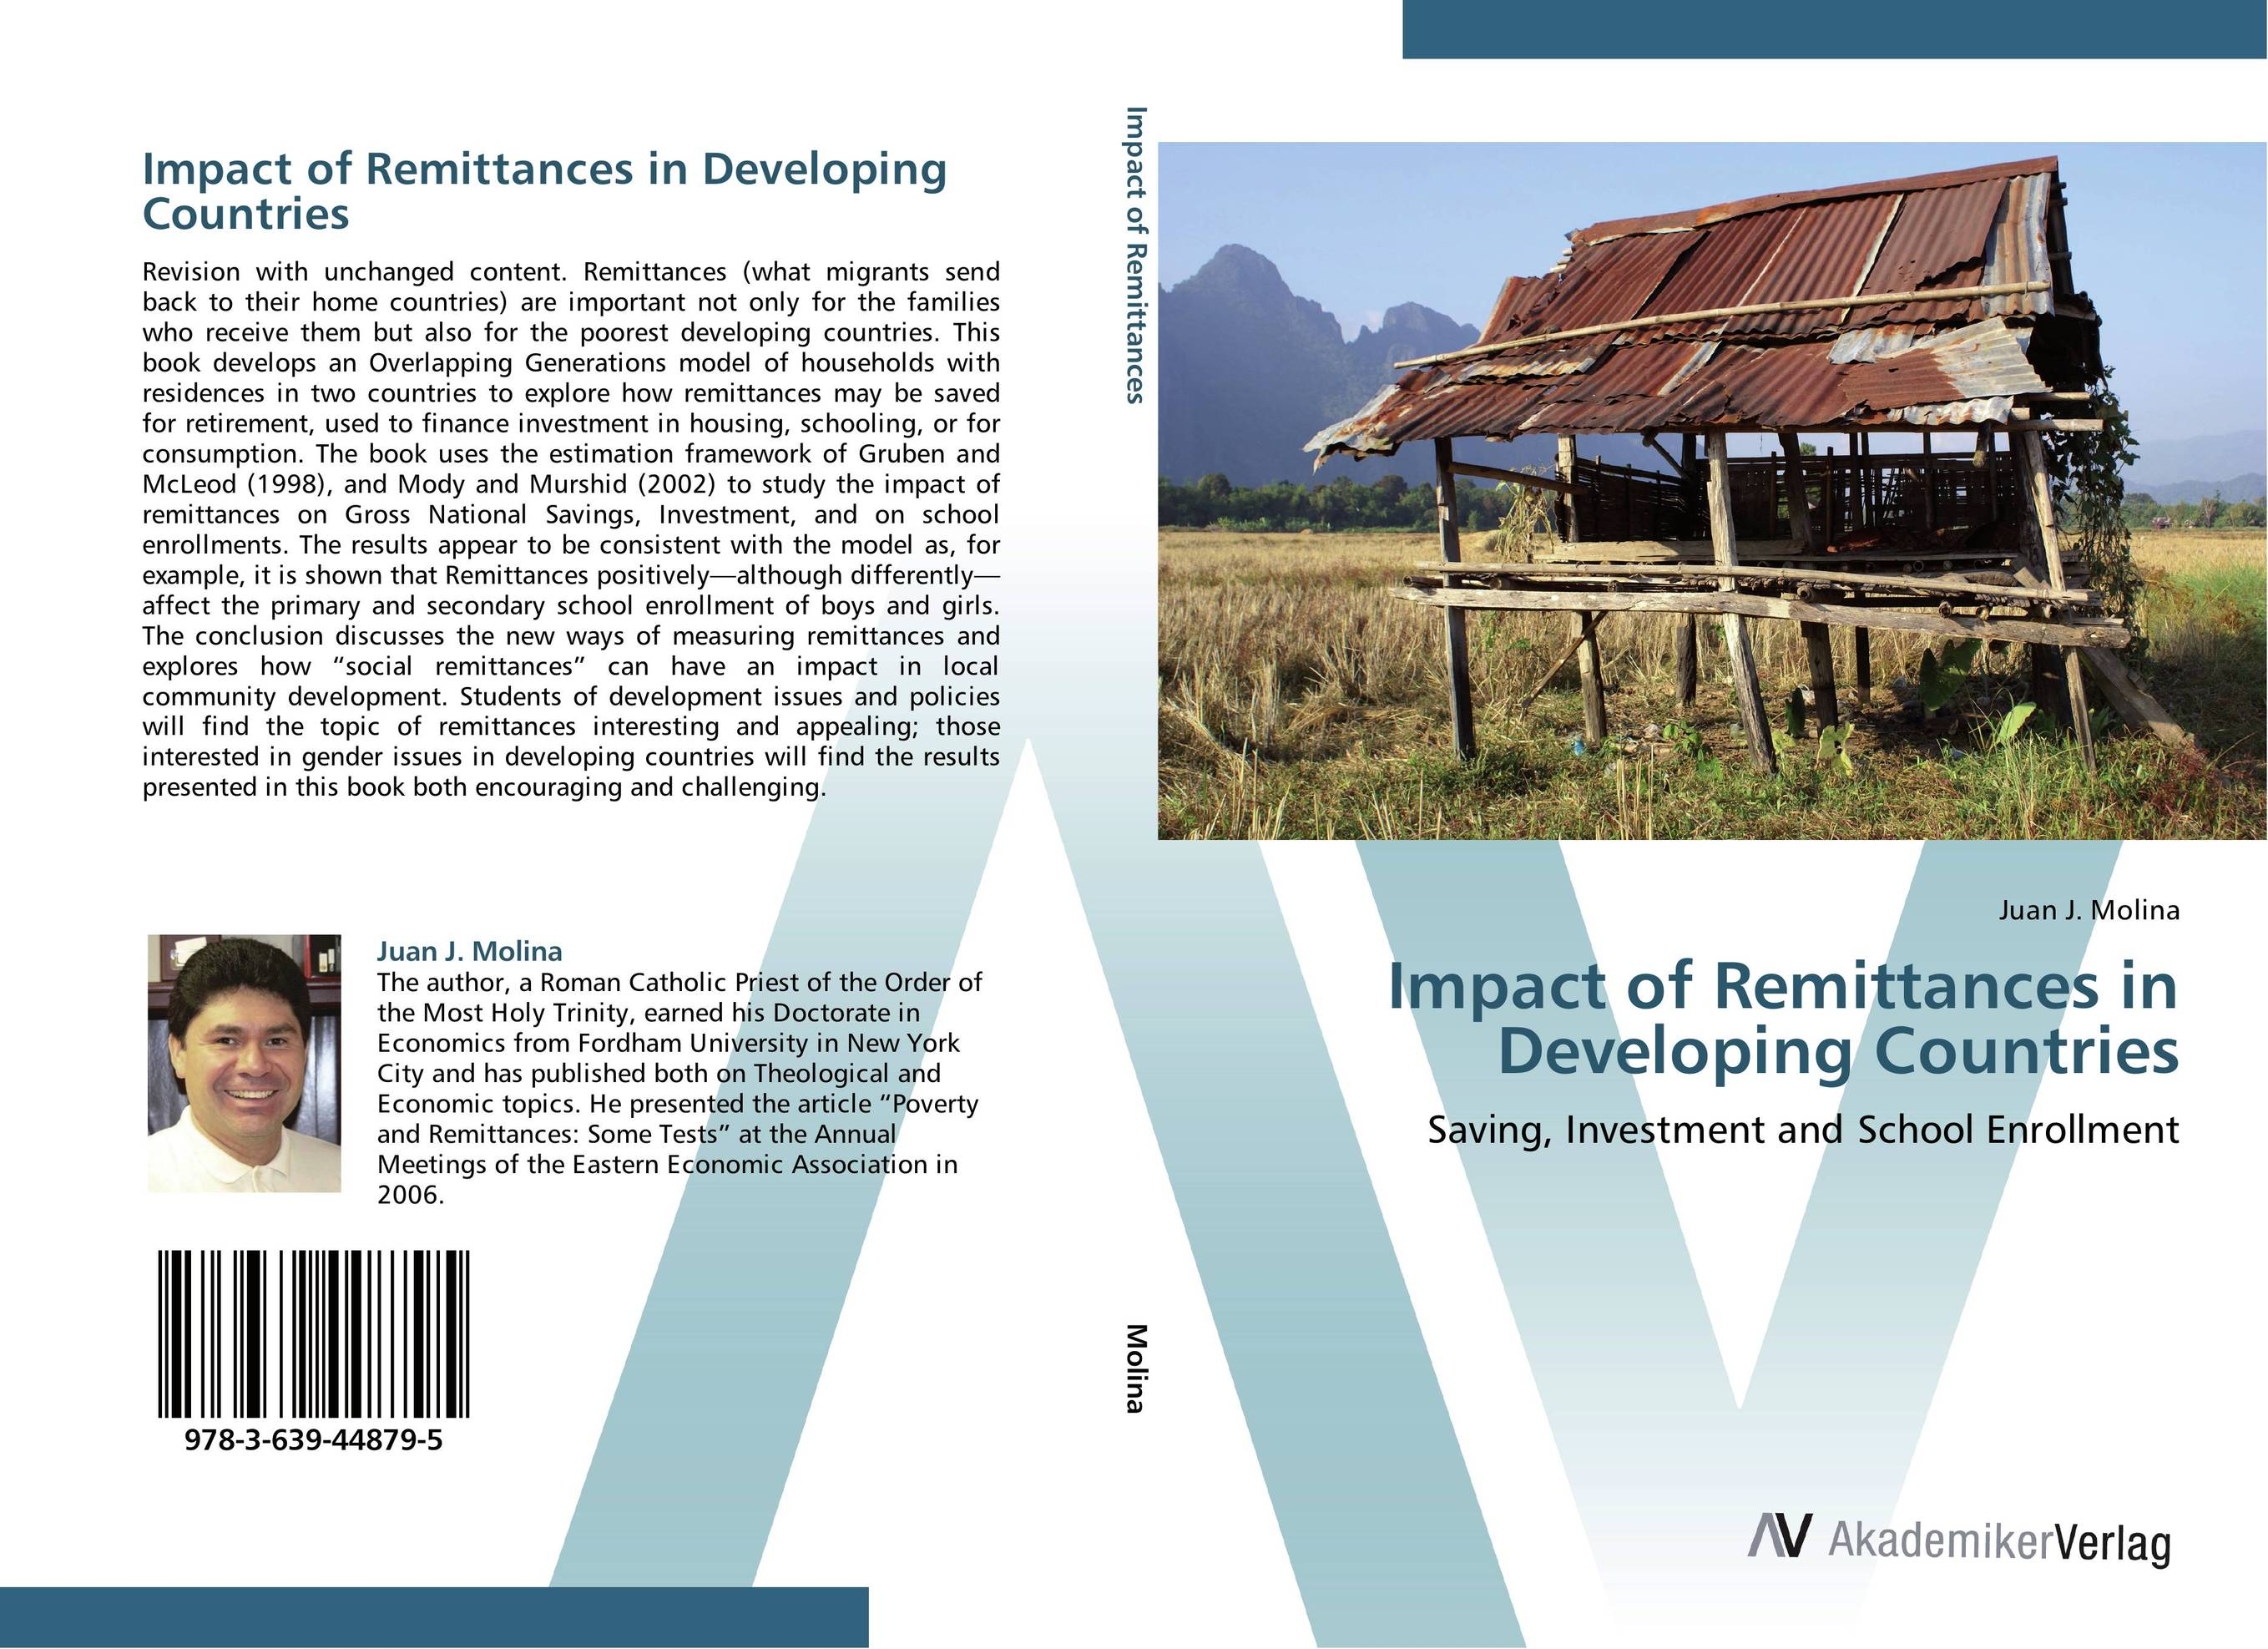 Impact of Remittances in Developing Countries